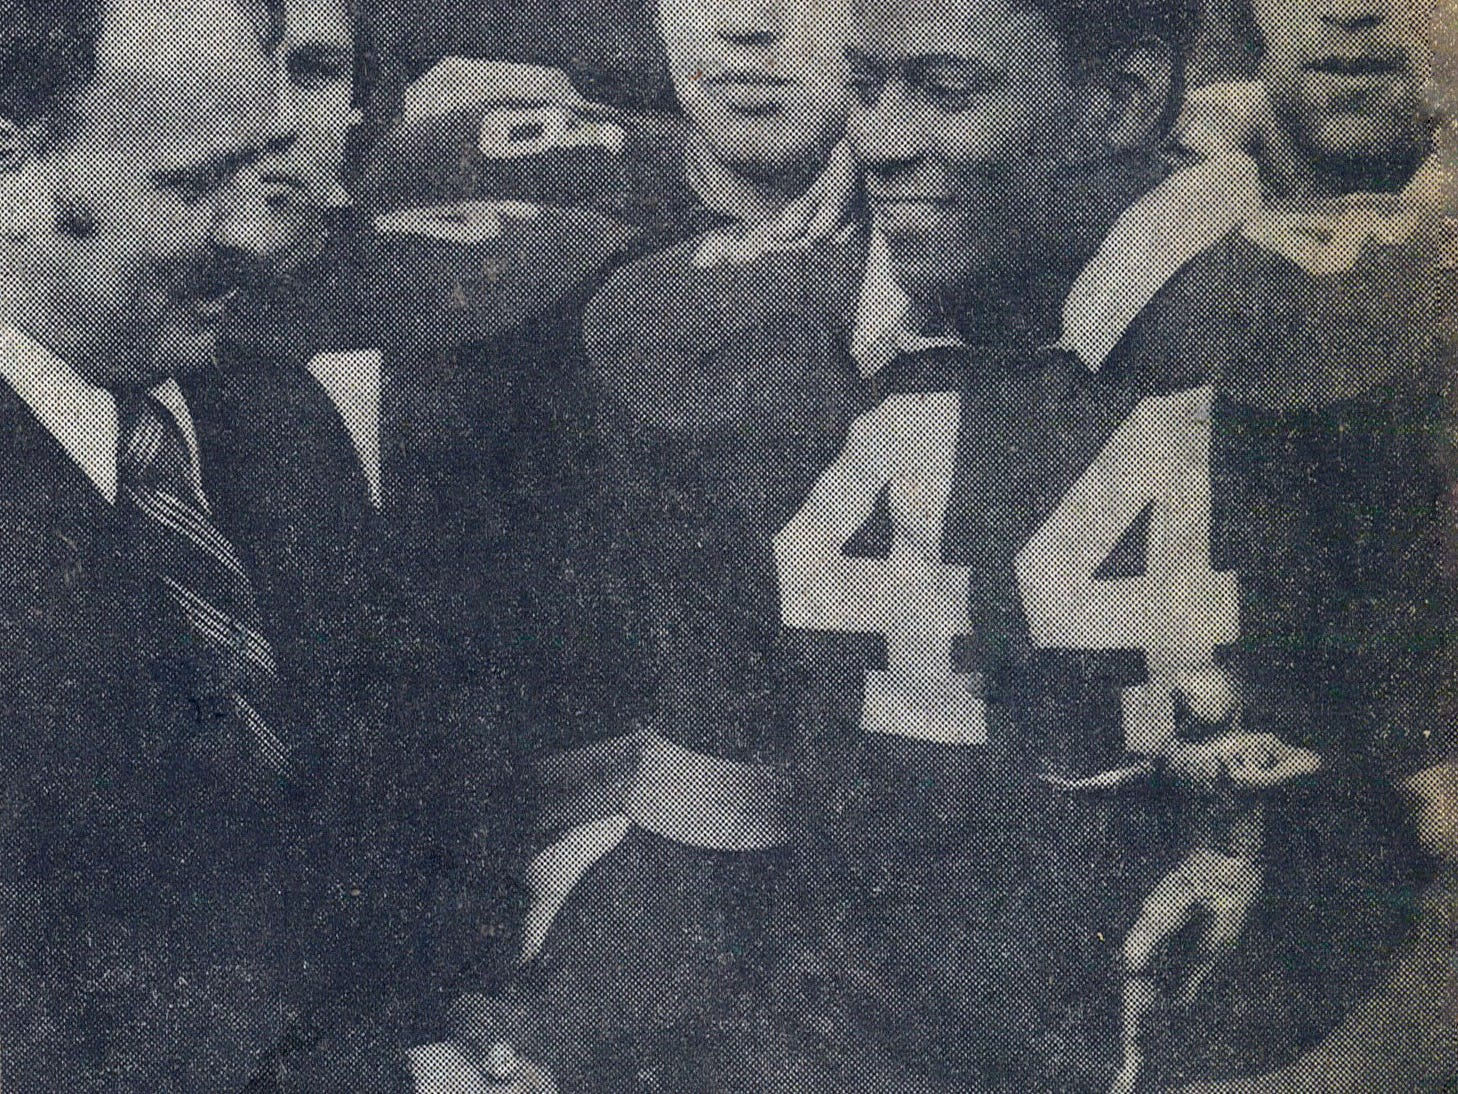 Lonnie Burgess accepts an award during his playing days at Red Bank Catholic.